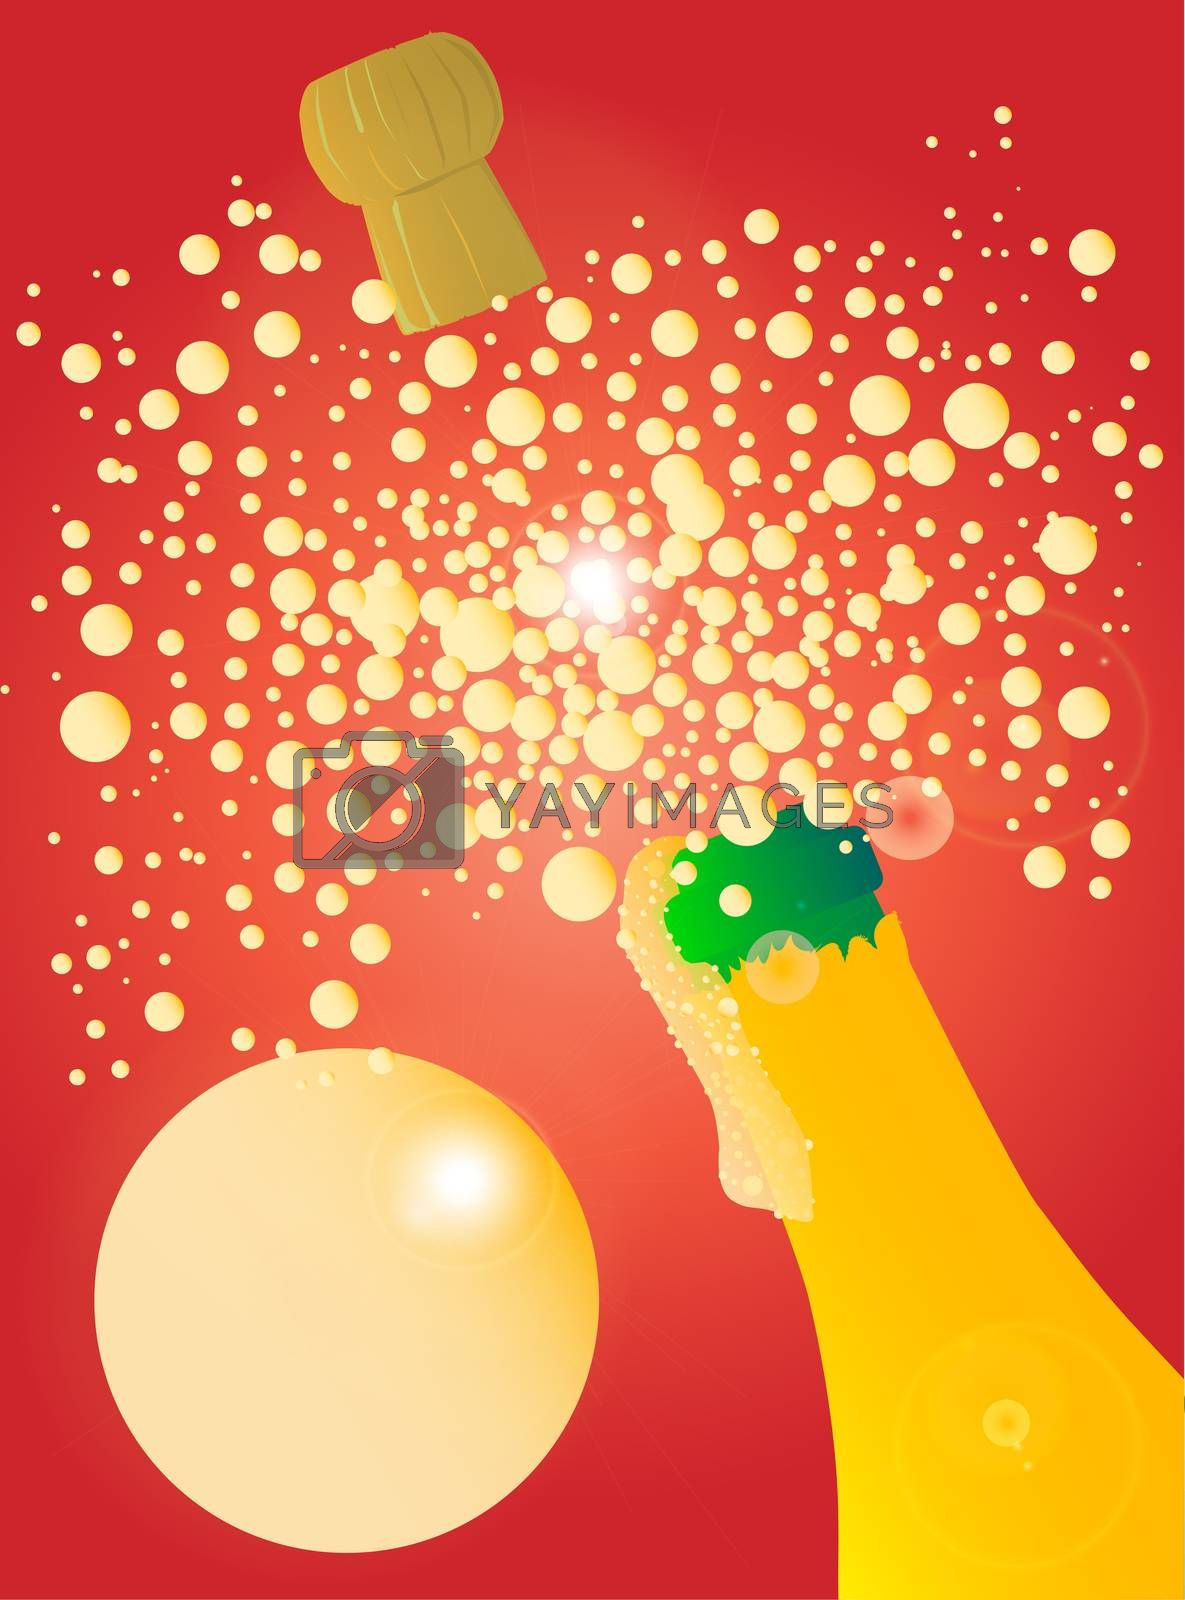 A celebration bottle being opened with froth and bubbles with one large bubble